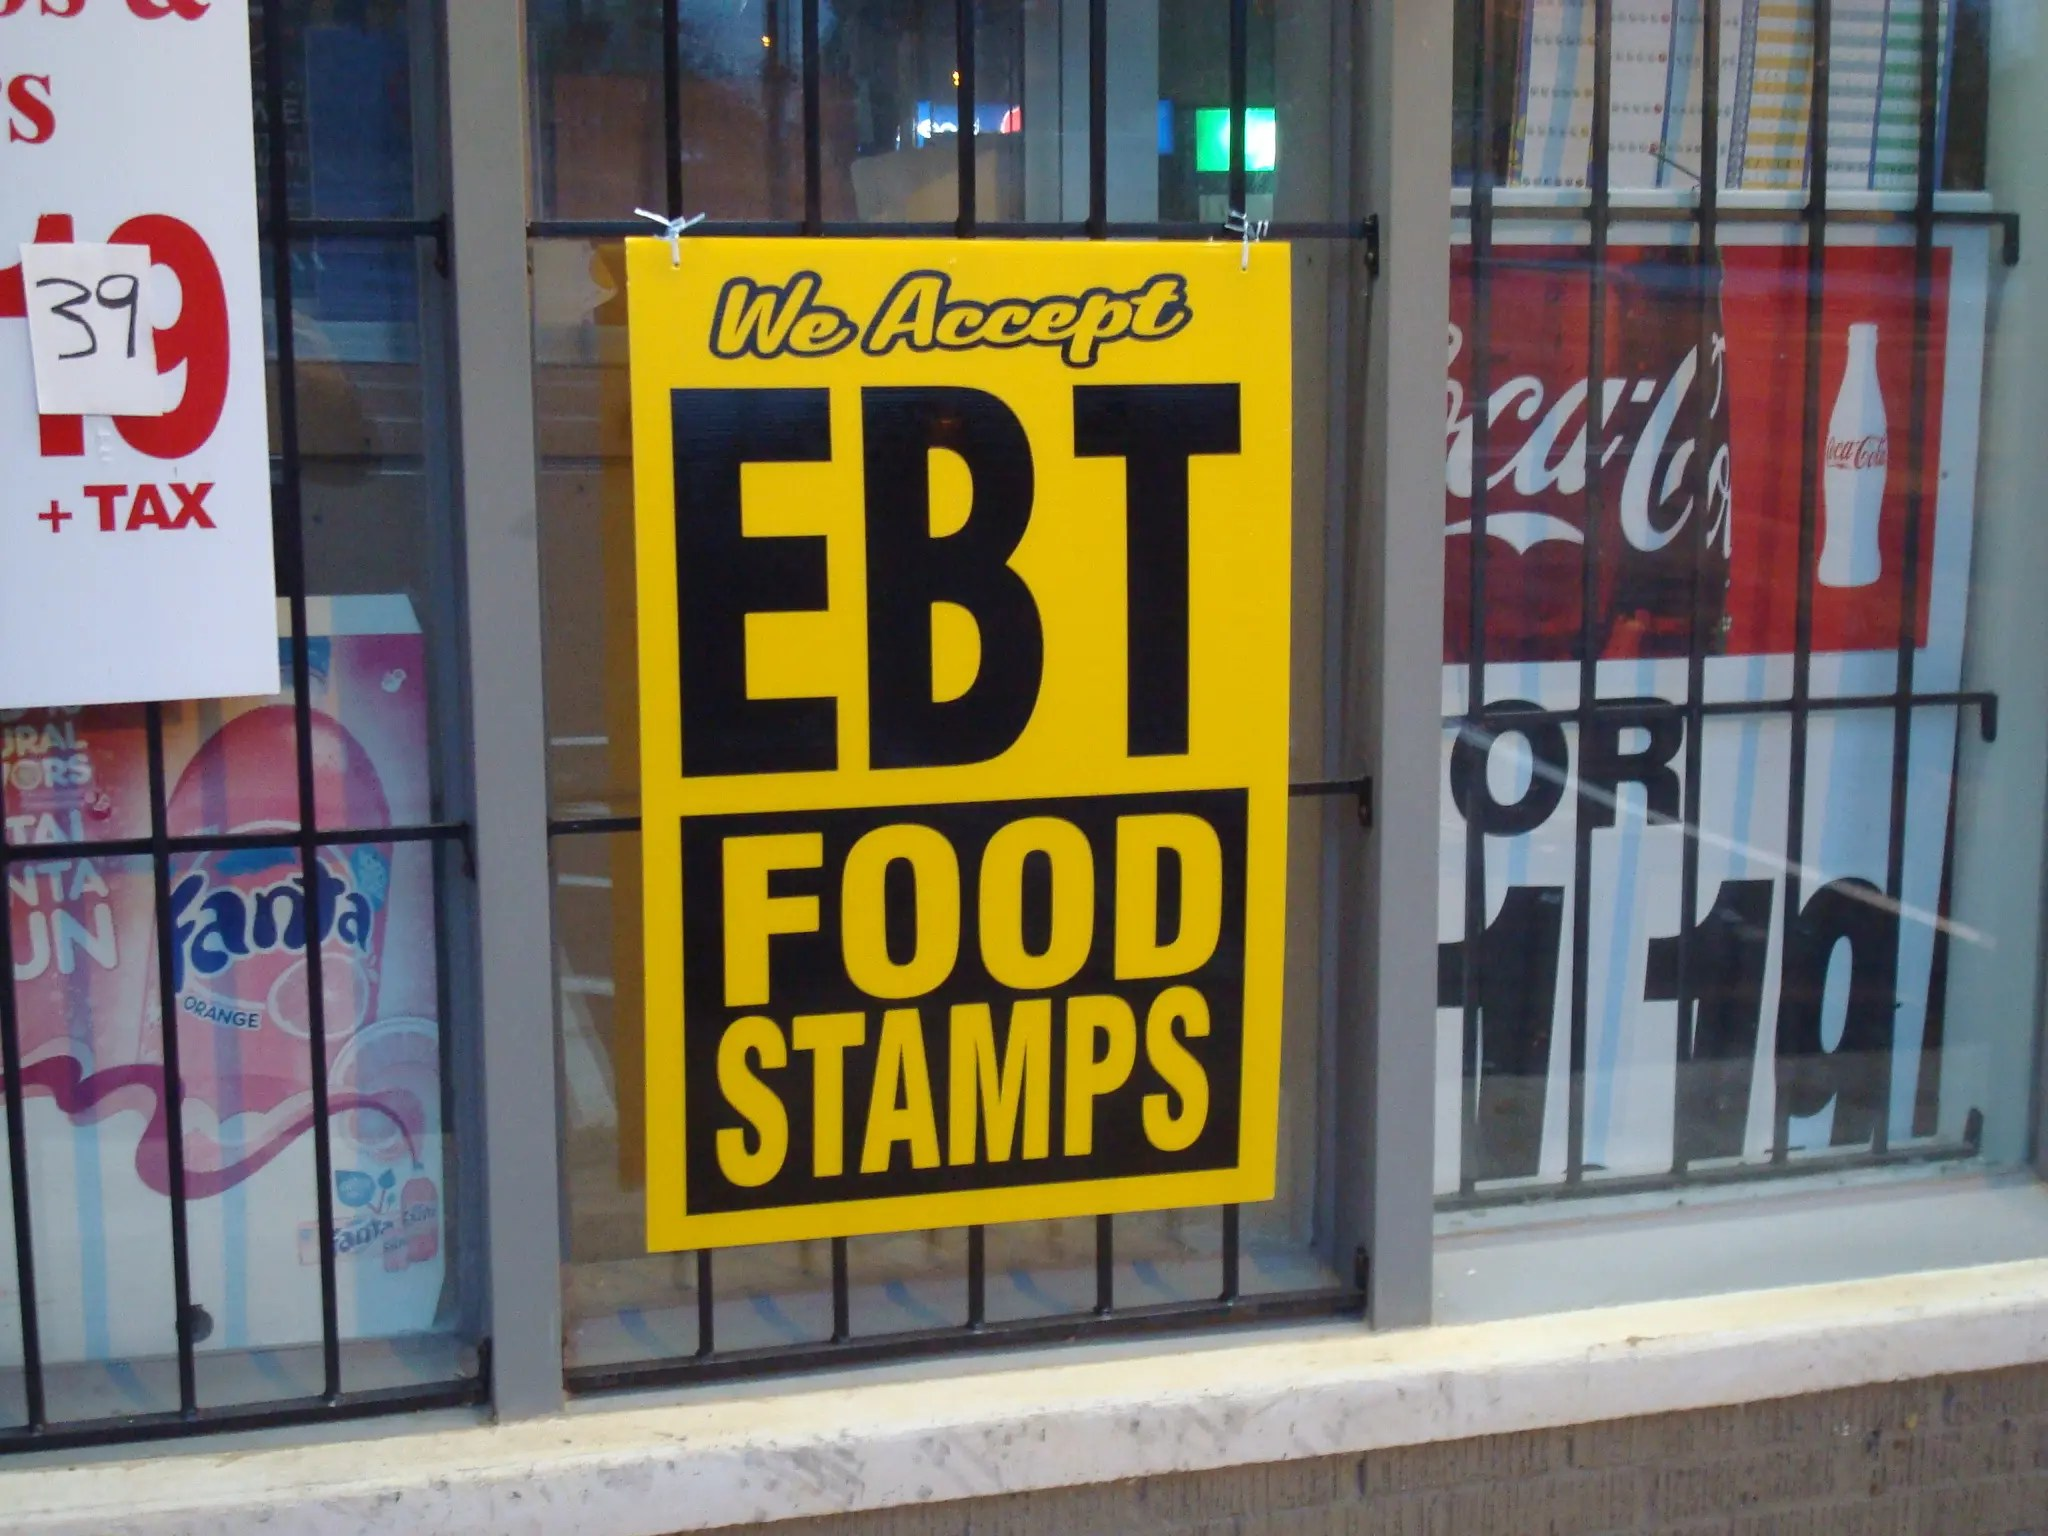 That's why many people rely on debit cards for shopping convenience. 'EBT' Welfare Cards Service Restored UDPATE | Woodbury, CT Patch